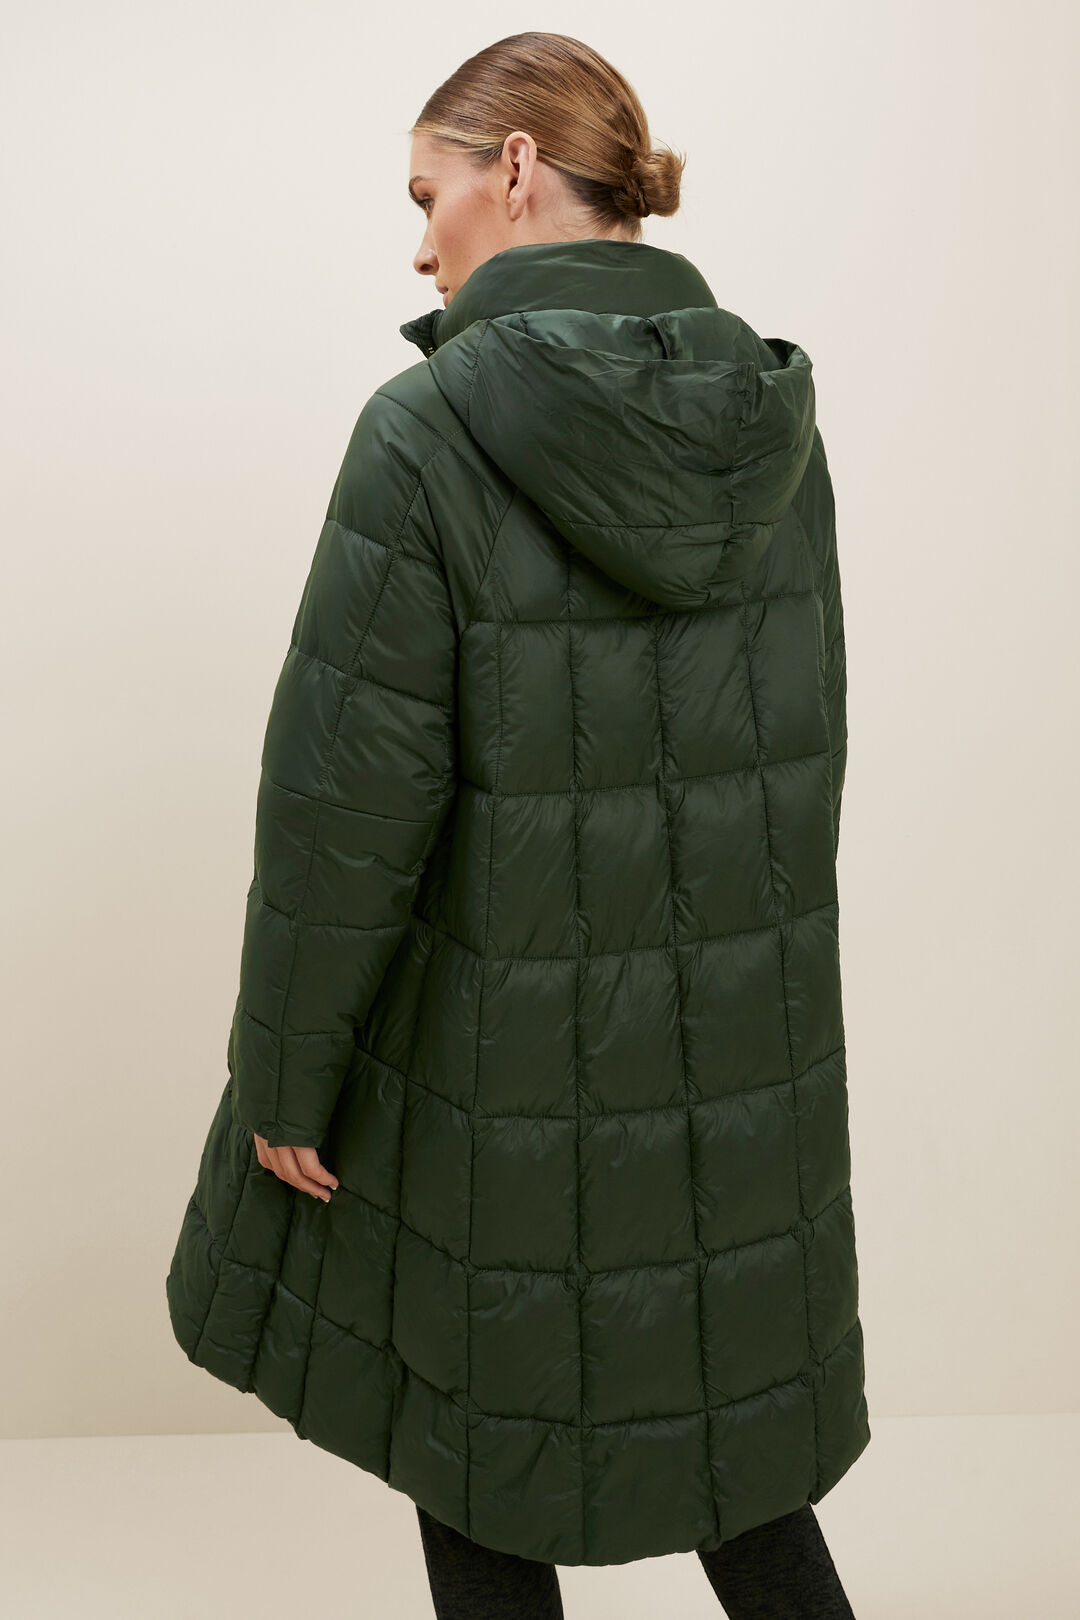 Quilted A-Line Puffer Jacket  BASIL  hi-res